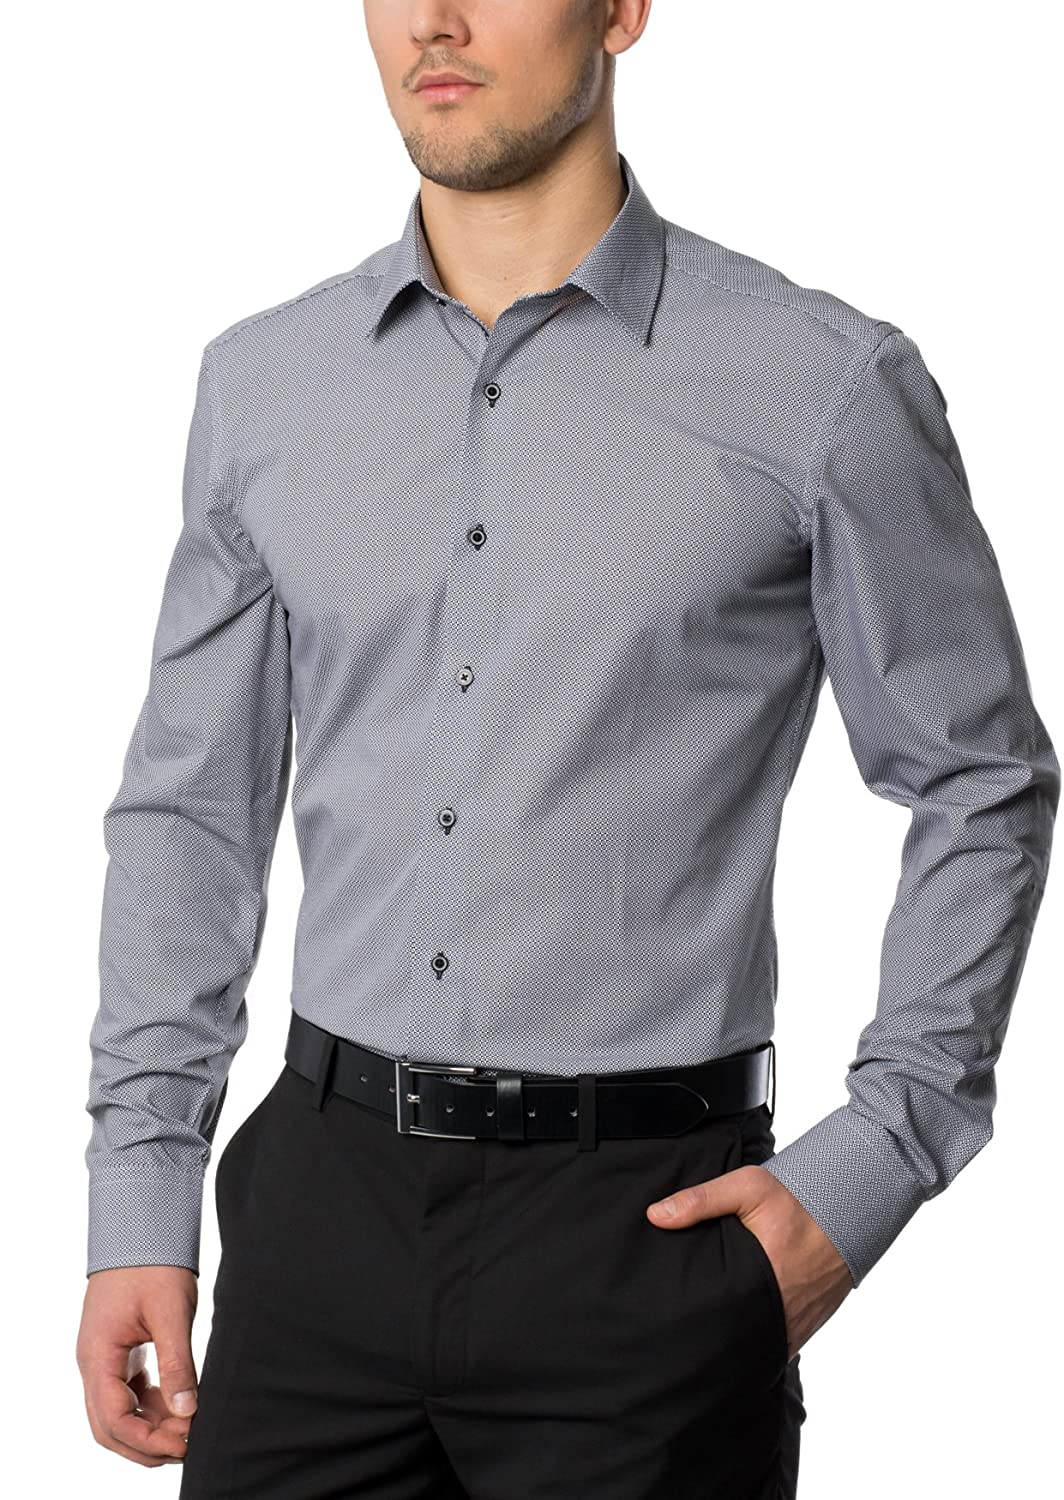 ETERNA Men's SLIM FIT long sleeve shirt gray patterned